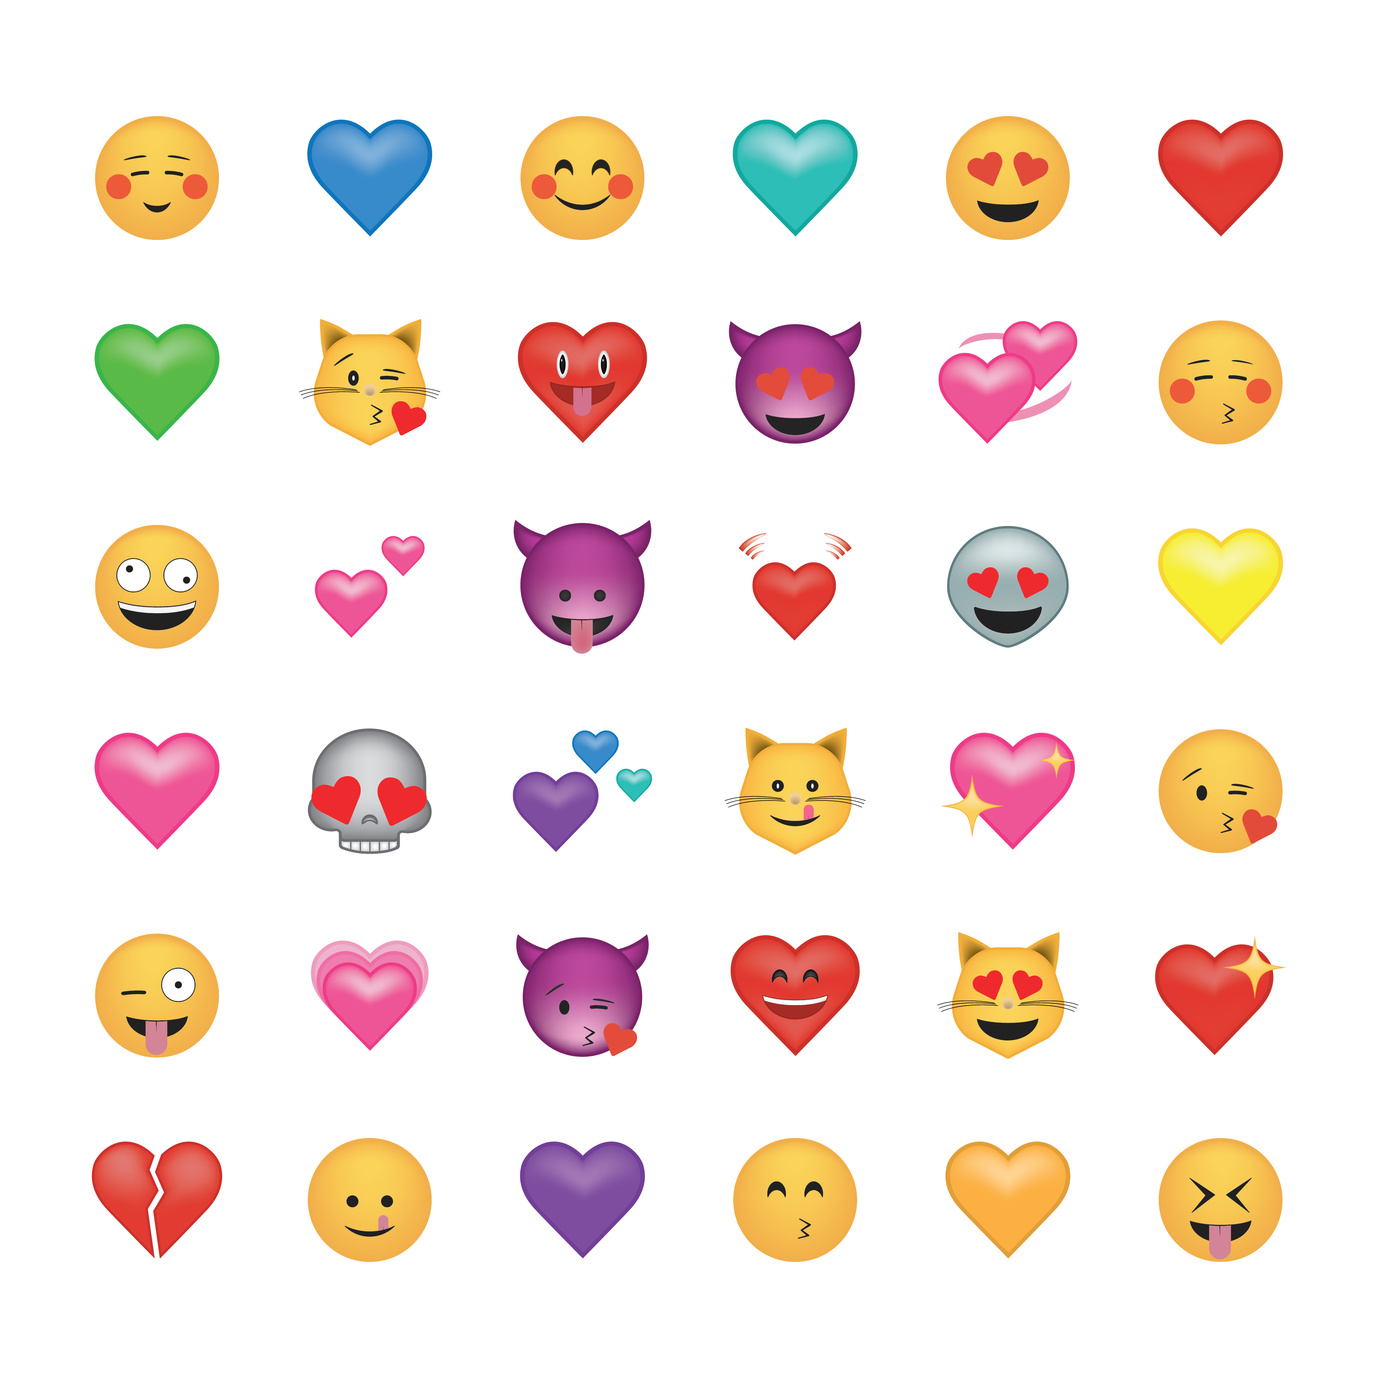 Forget i love you here are 6 creative ways to say how you feel forget i love you here are 6 creative ways to say how you feel with emojis biocorpaavc Image collections